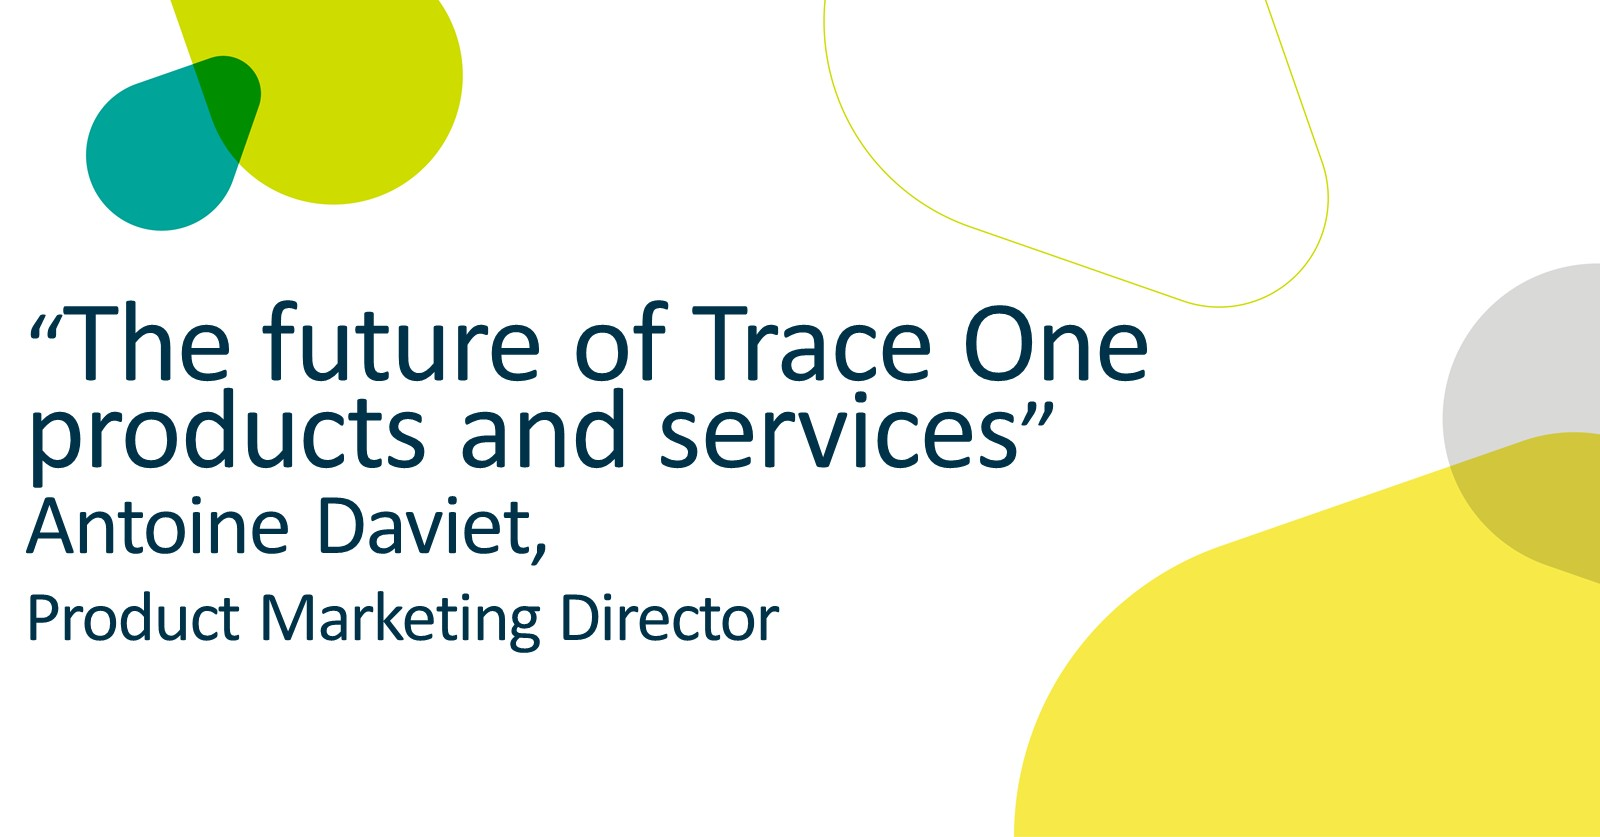 The future of Trace One products and services